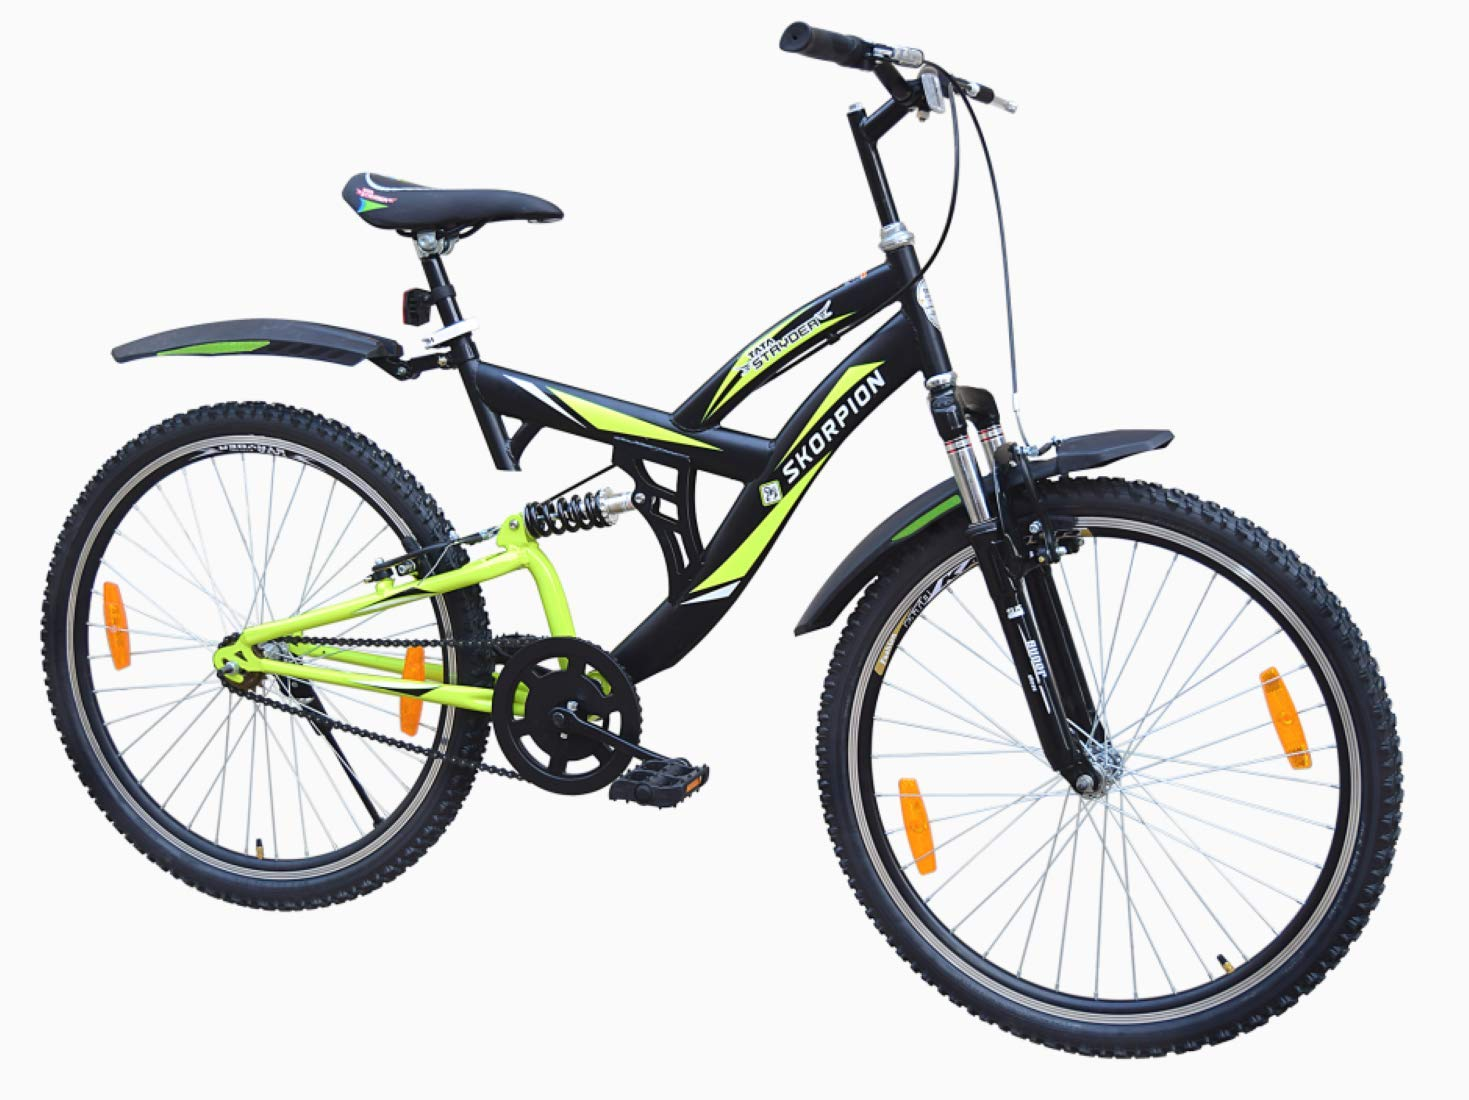 ca0aa1f284b Tata stryder black green skorpion inches road cycle un installed sports  fitness outdoors jpg 1469x1100 Road